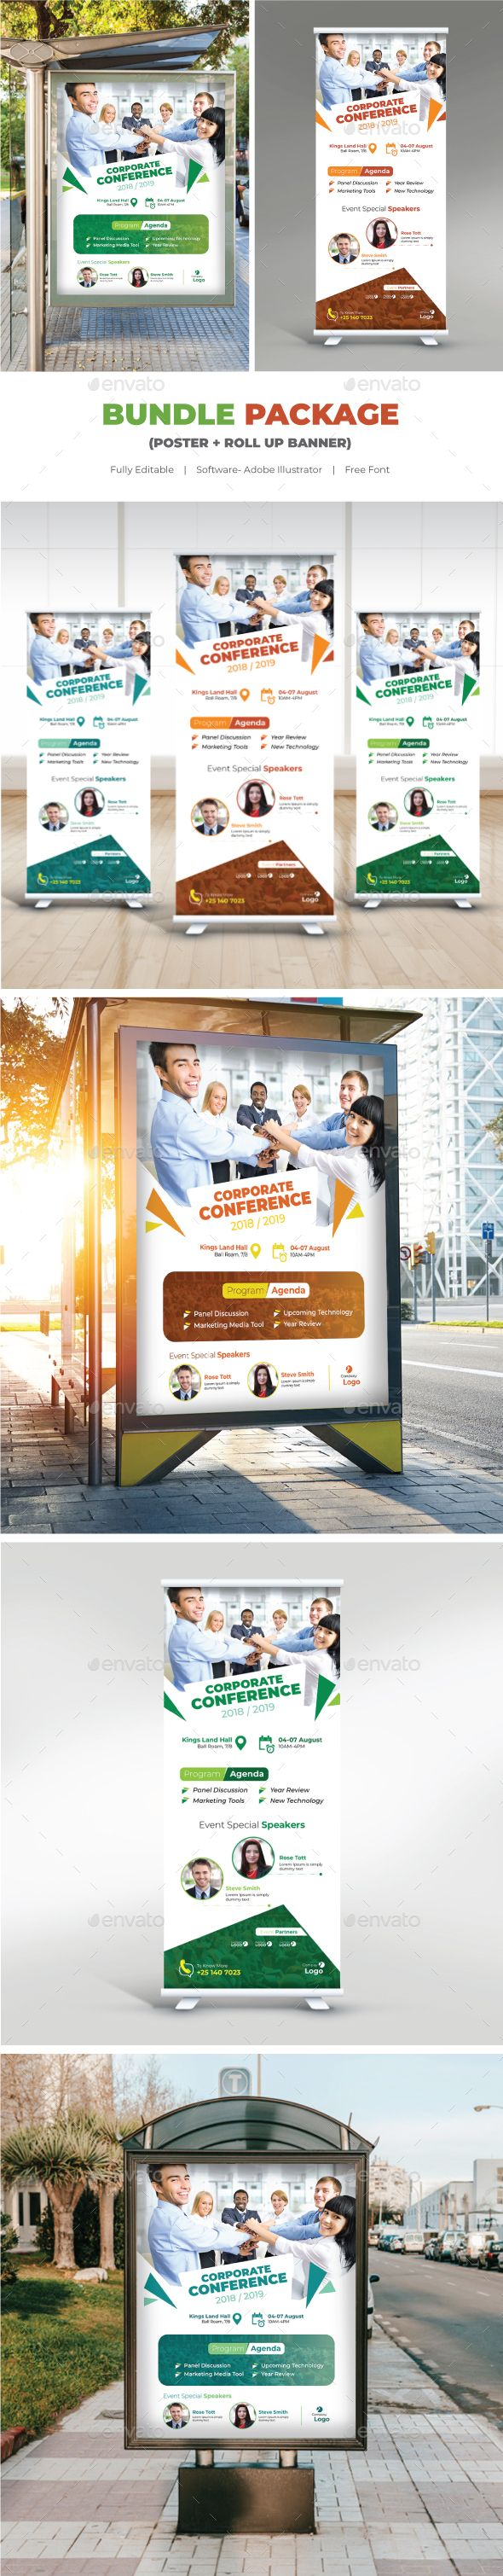 Conference Bundle - Poster + Roll Up Banner Templates Vector EPS, AI Illustrator